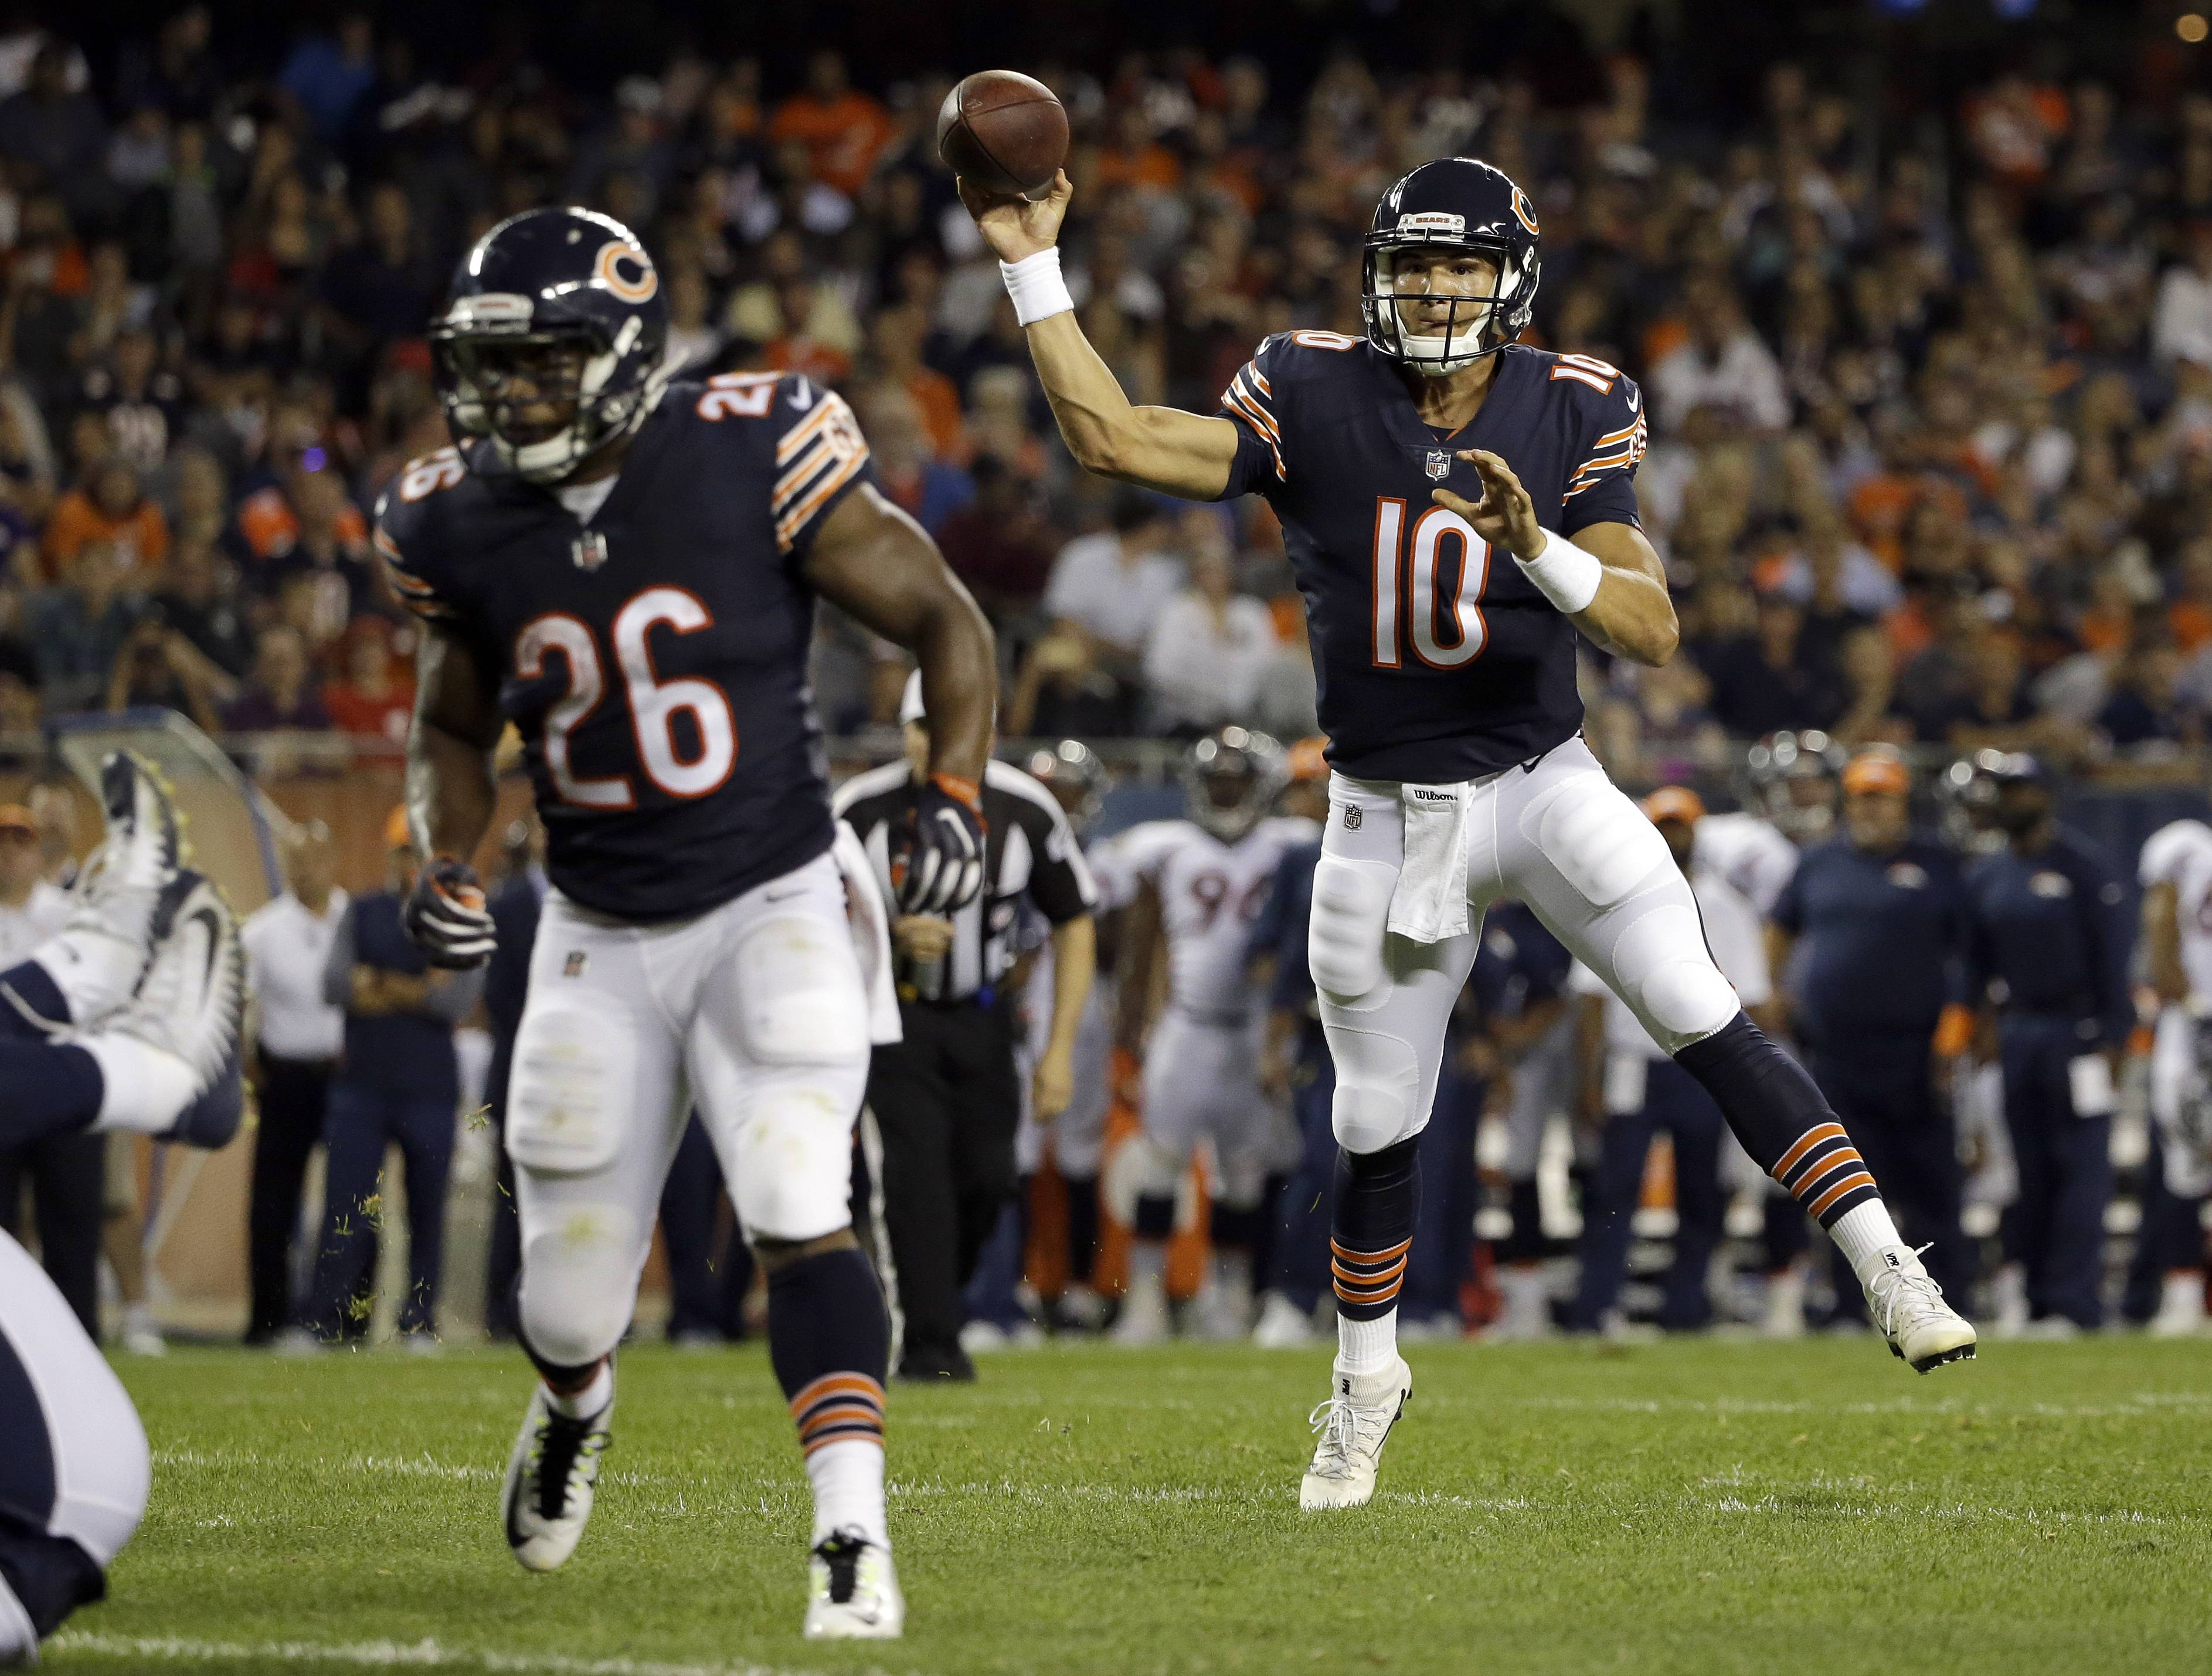 Chicago Bears quarterback Mitch Trubisky throws a touchdown pass Aug. 10 in Chicago. The Bears' rebuild is three years in and there's not a playoff appearance in sight, Barry Rozner writes.